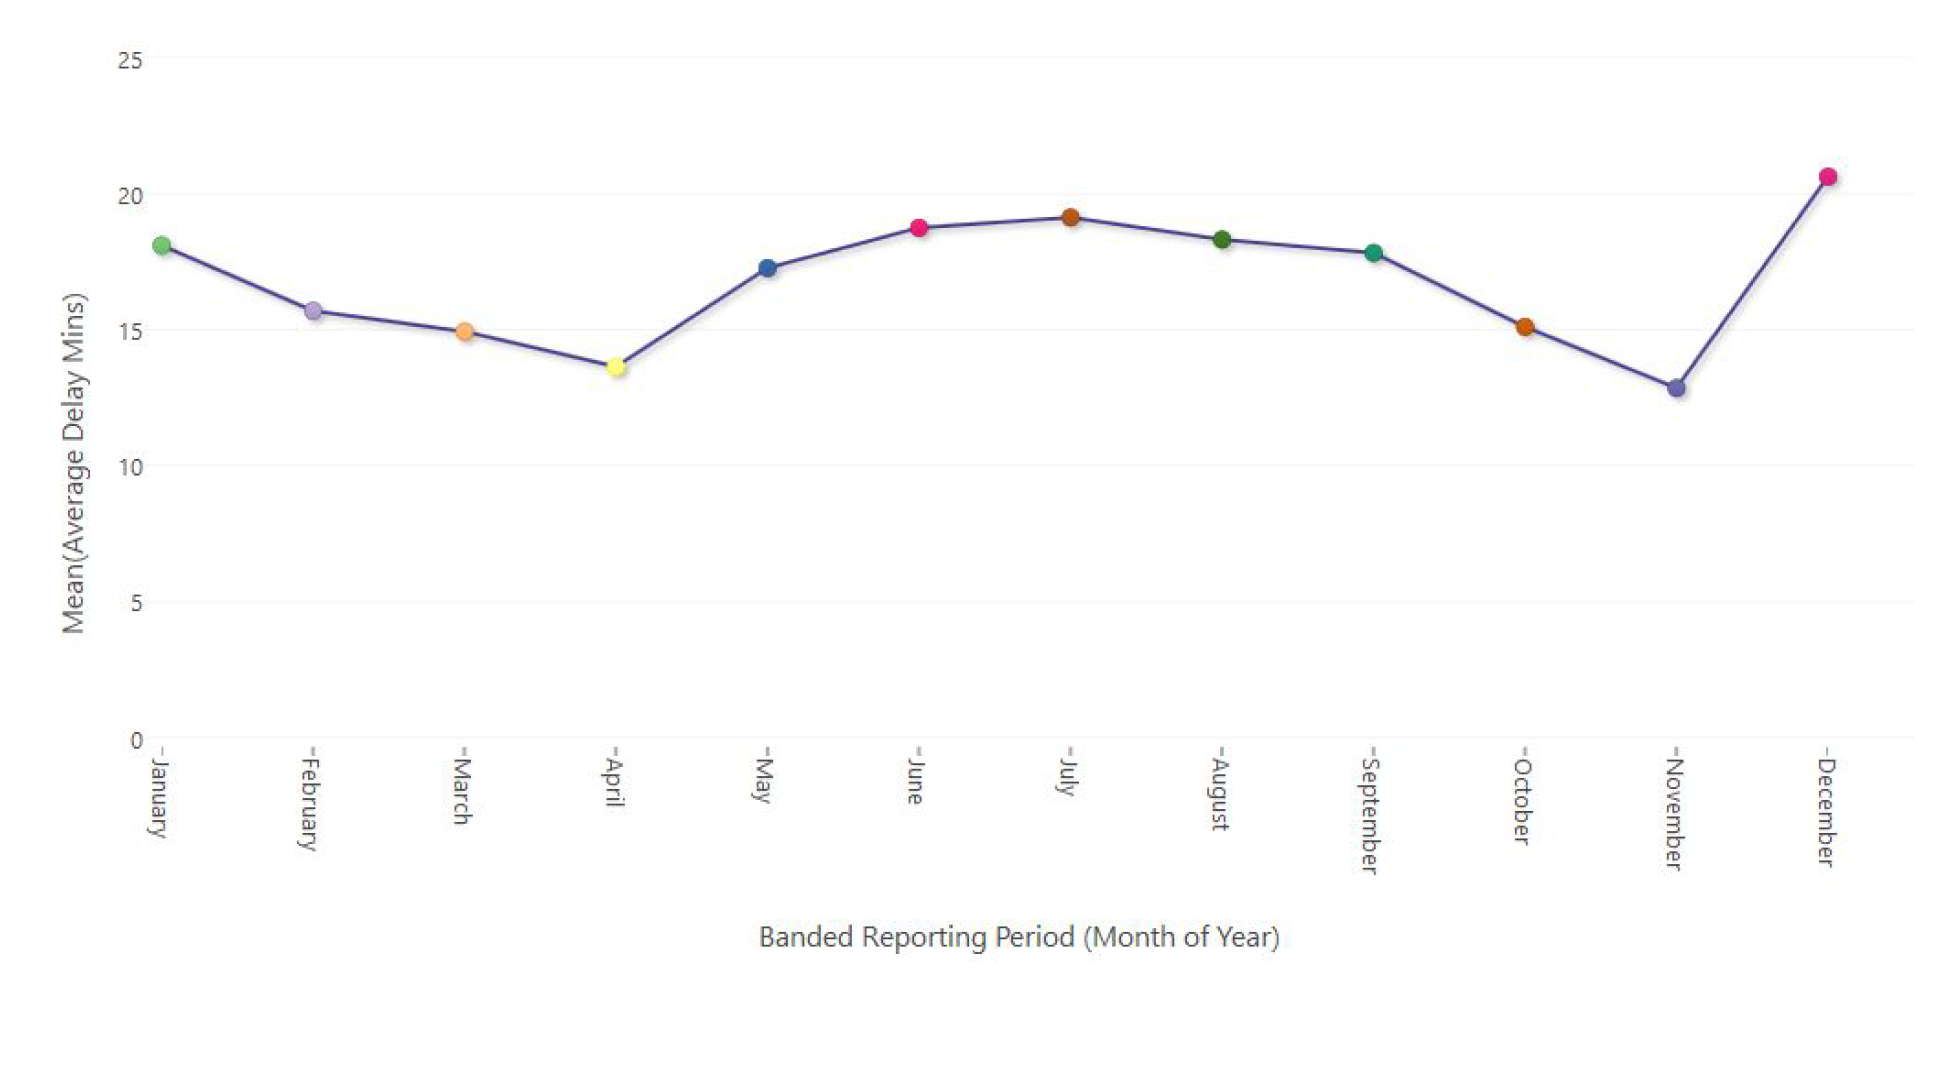 Branded Reporting Period (Month of Year)